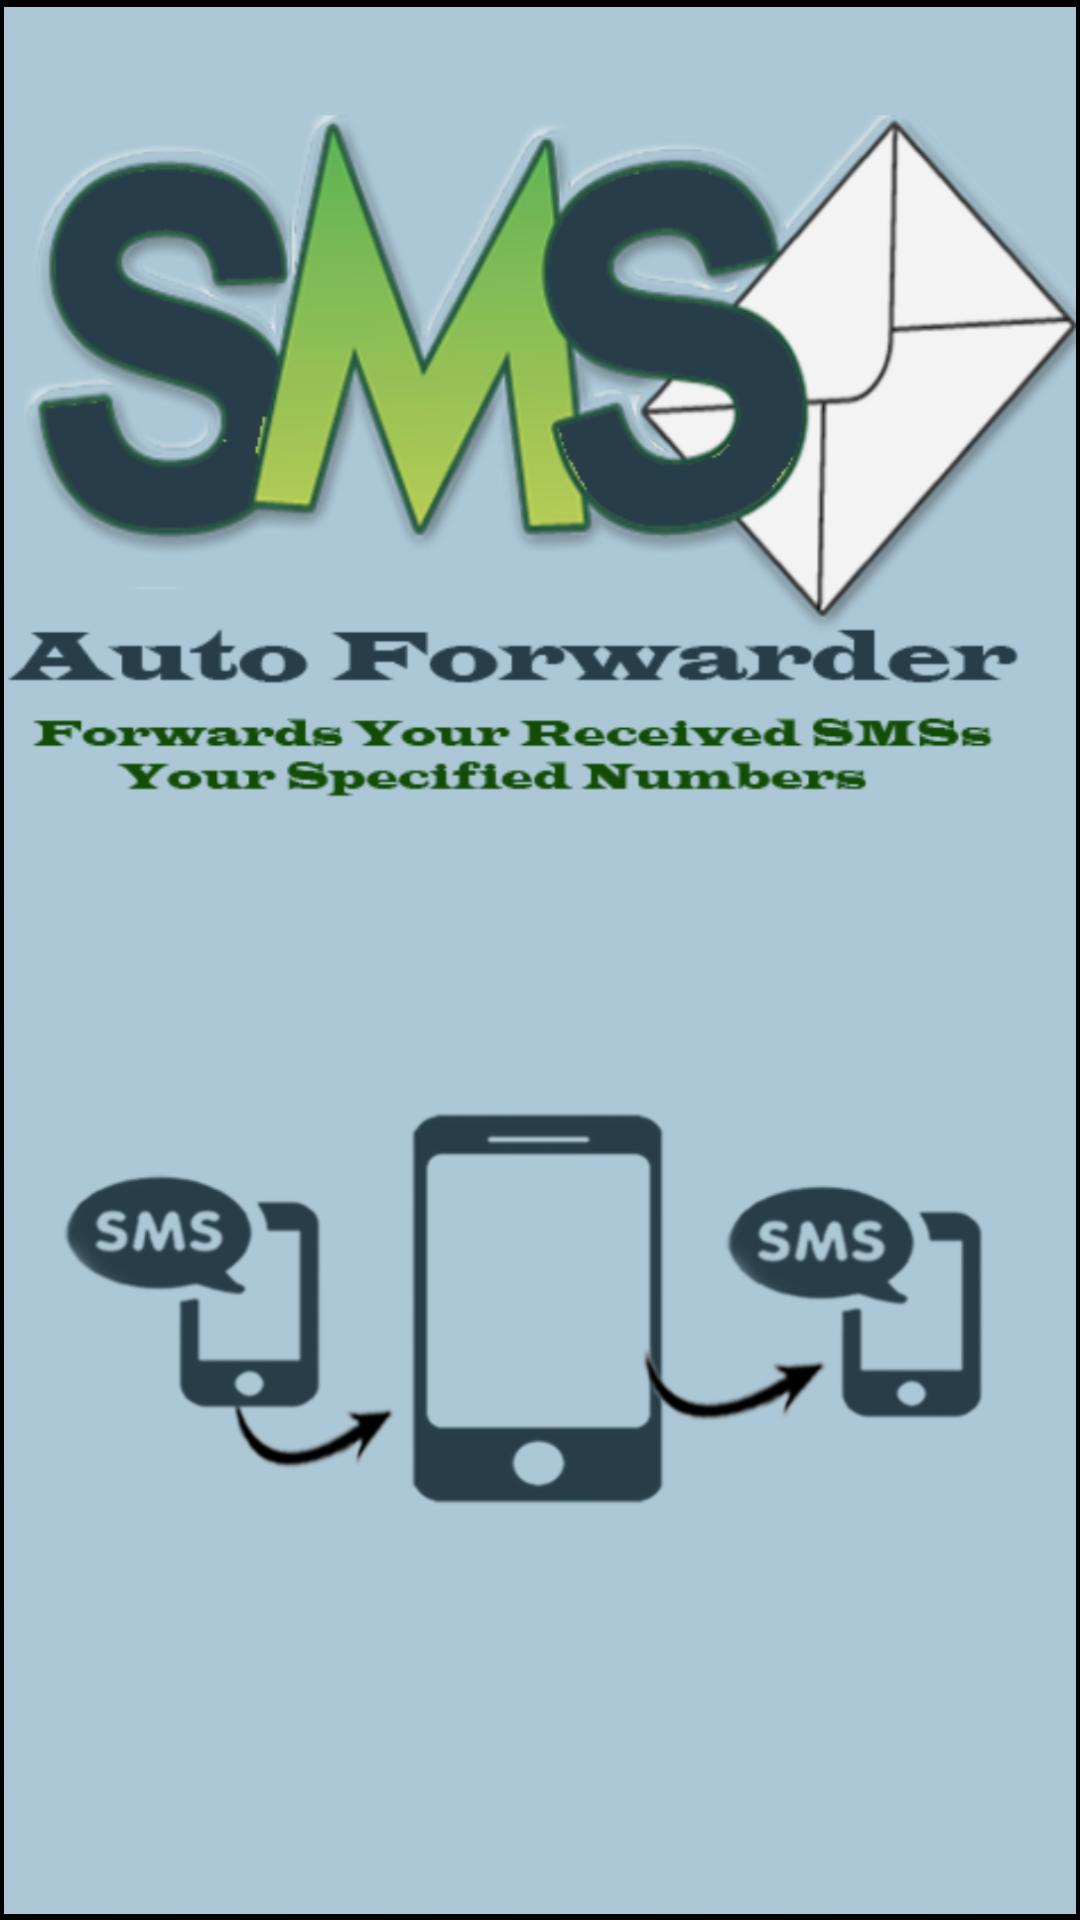 SMS Auto Forwarder for Android - APK Download